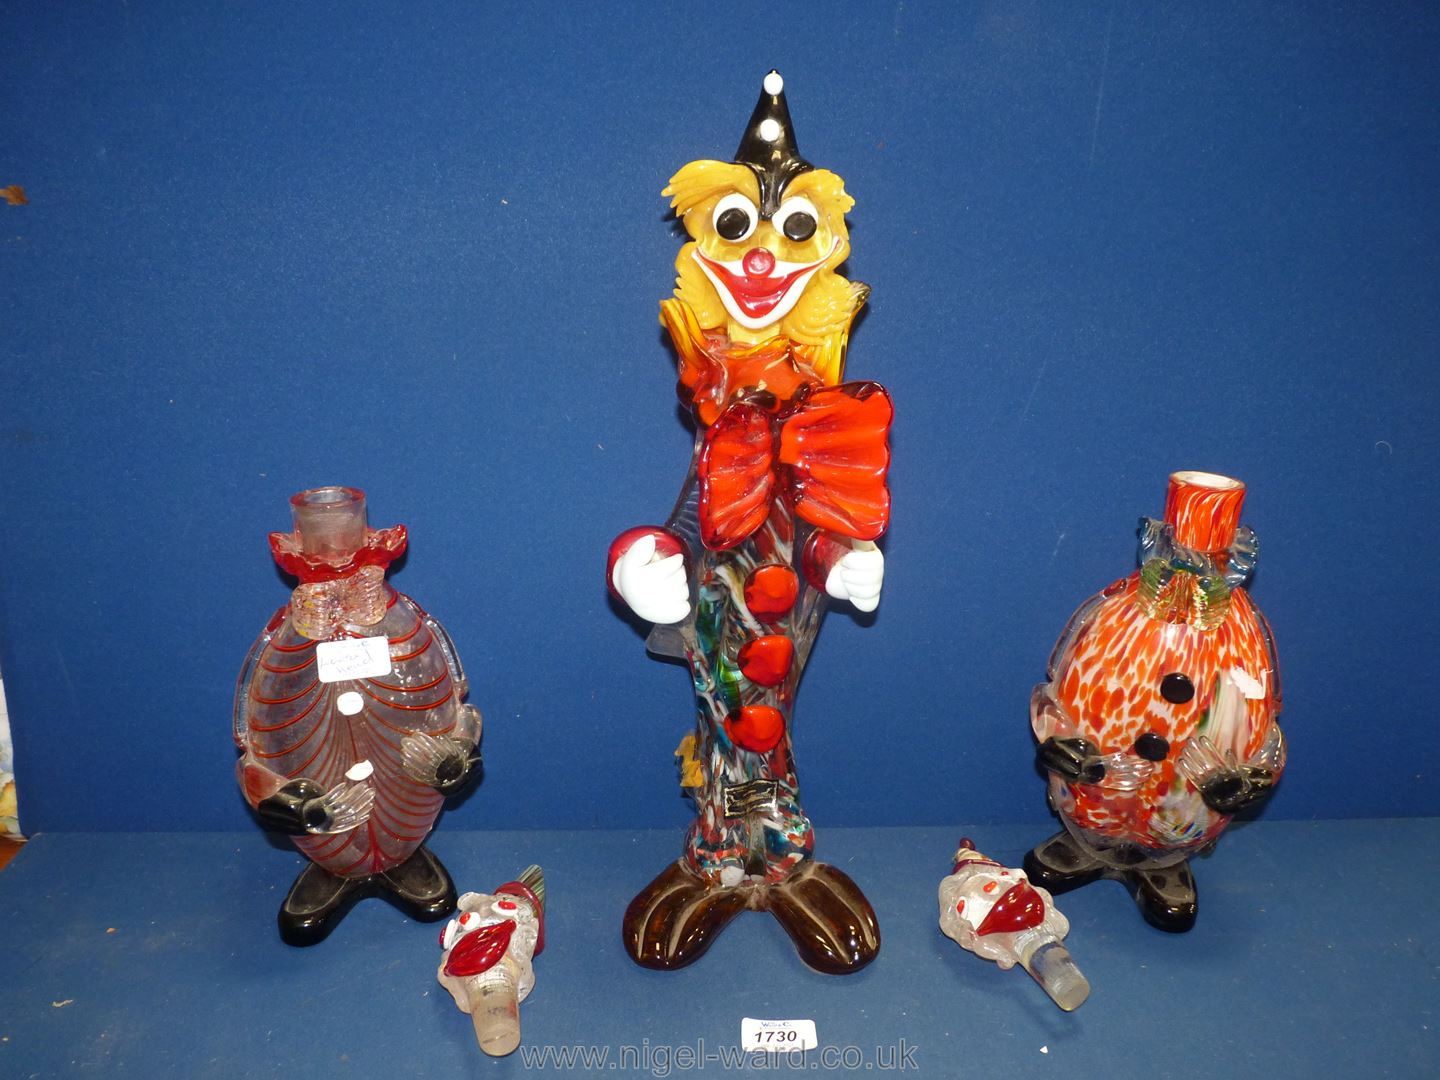 A tall Murano glass Clown, 18 1/2'' and two Clown decanters, 14'' and 14 1/2'' tall.